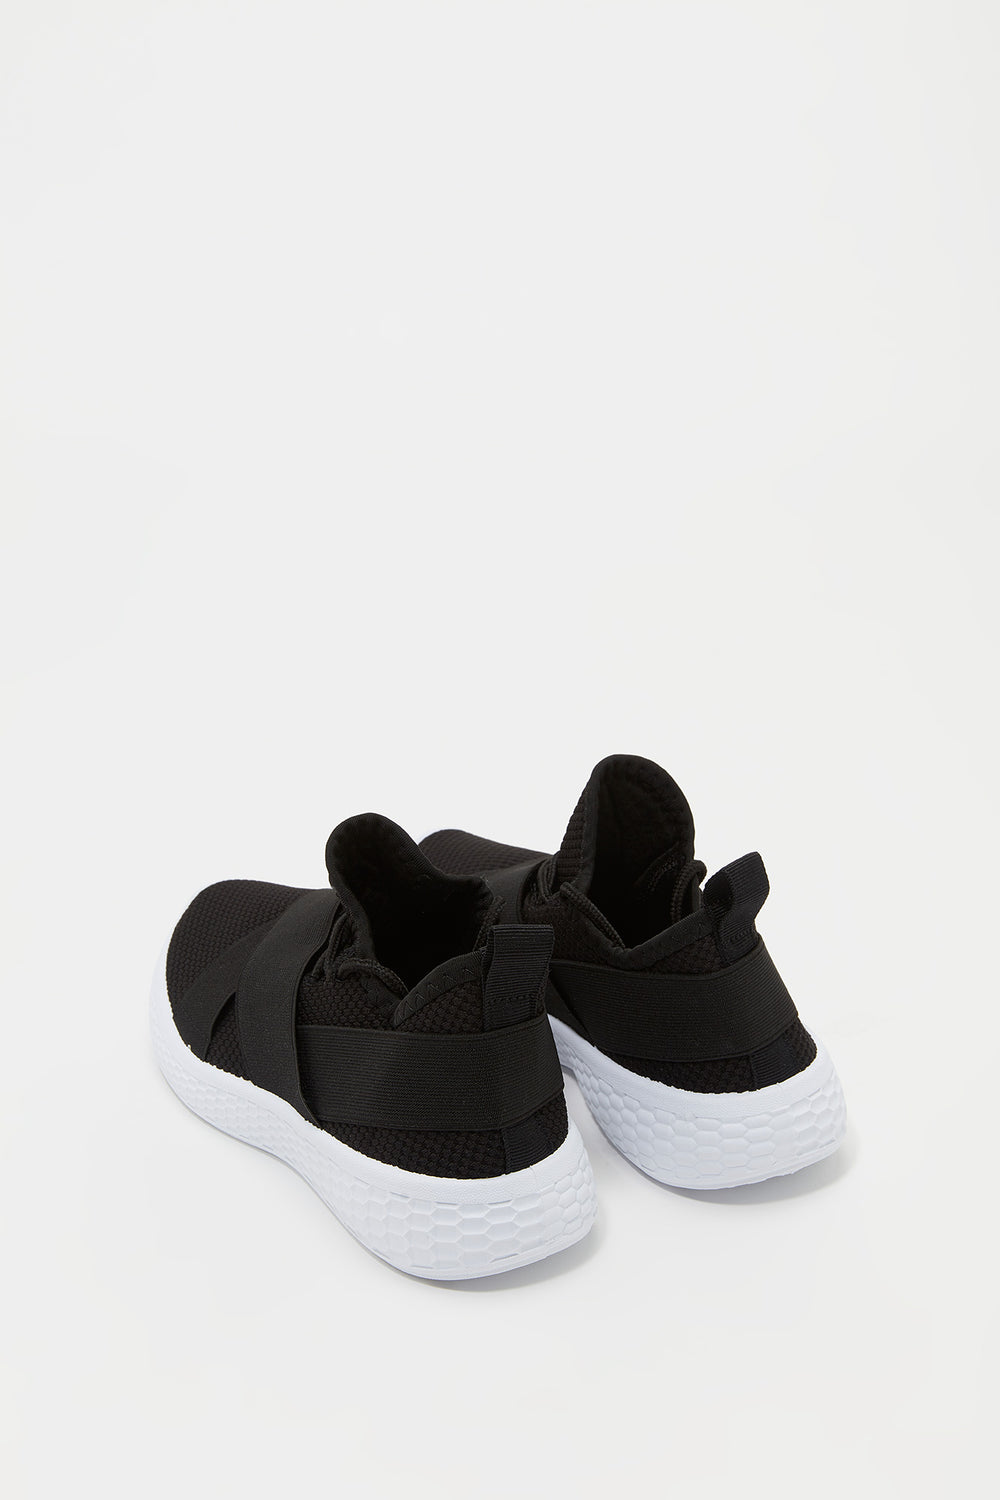 Girls Knit Elasticband Sneaker Black